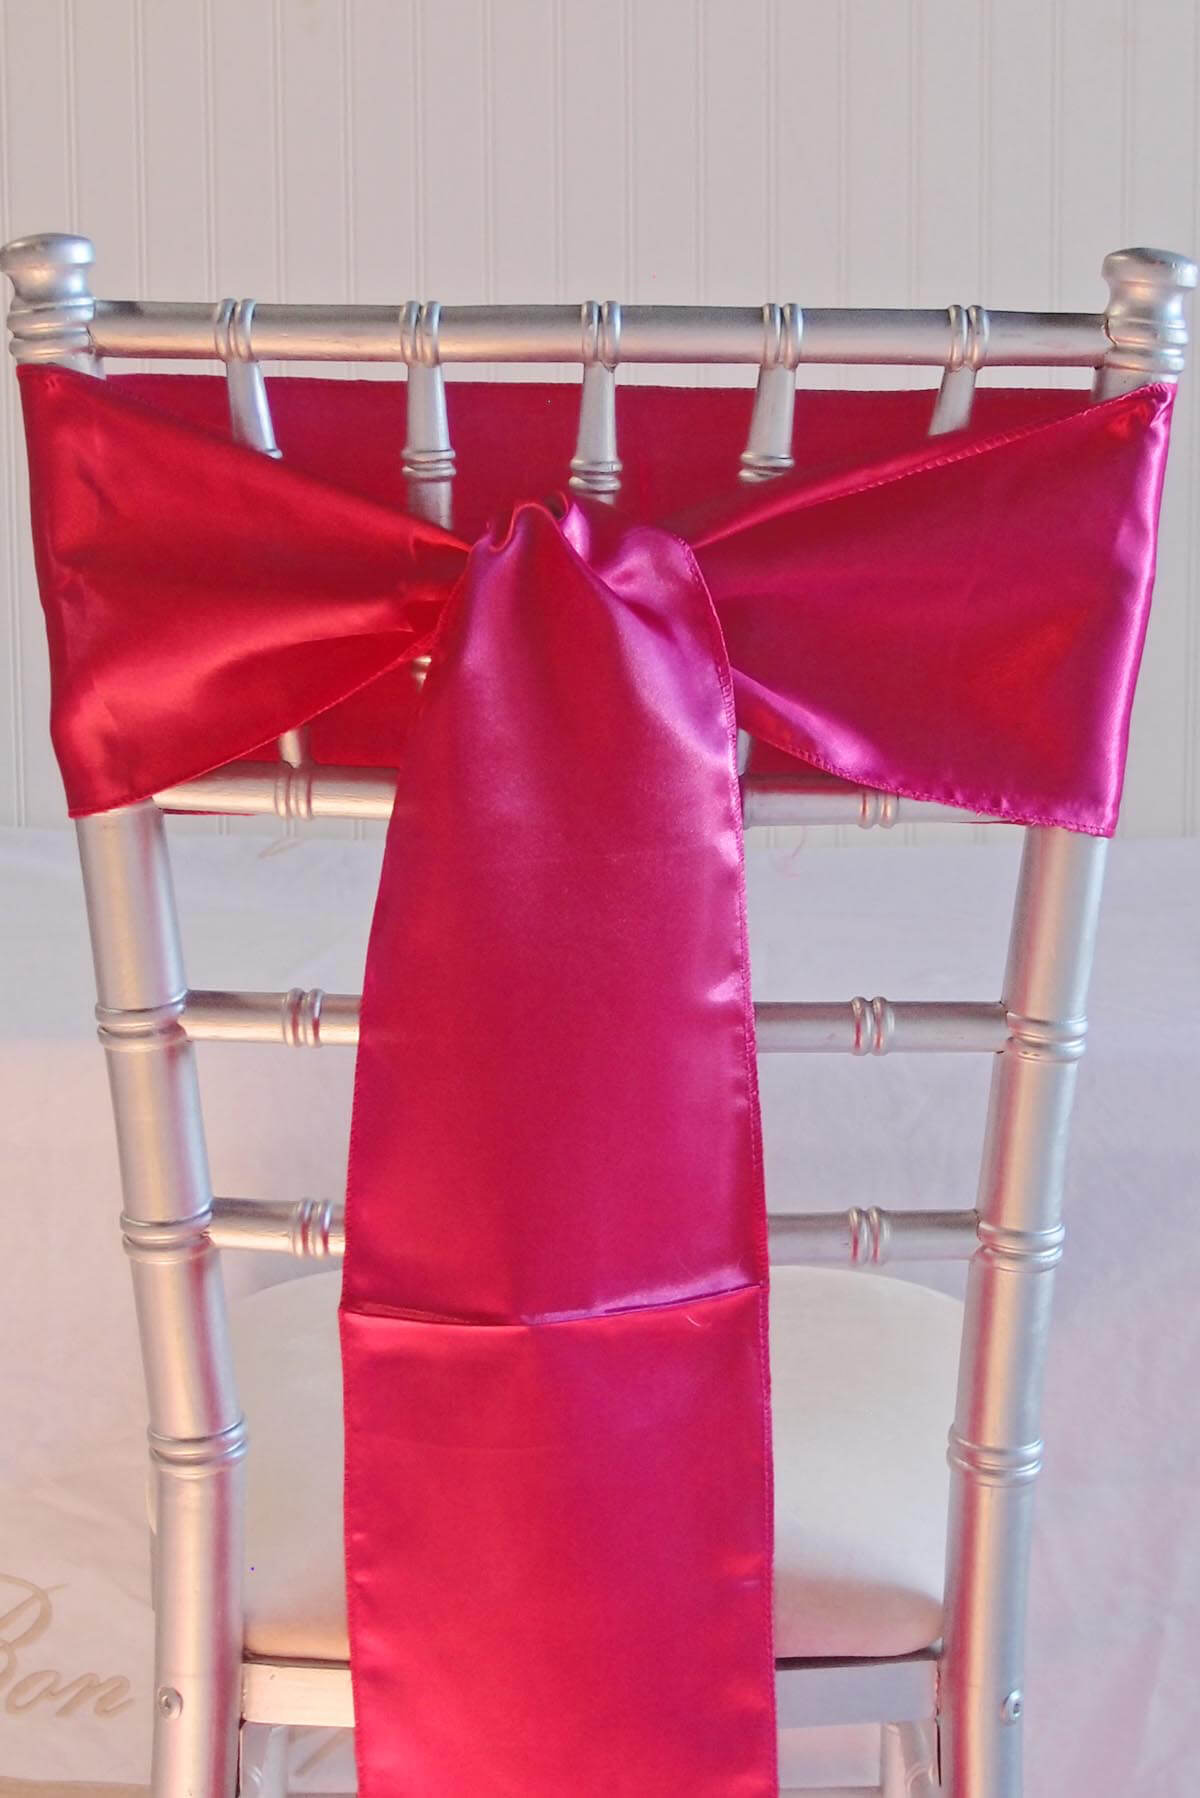 10 Dark Fuchsia Pink Satin Chair Sashes 6x106